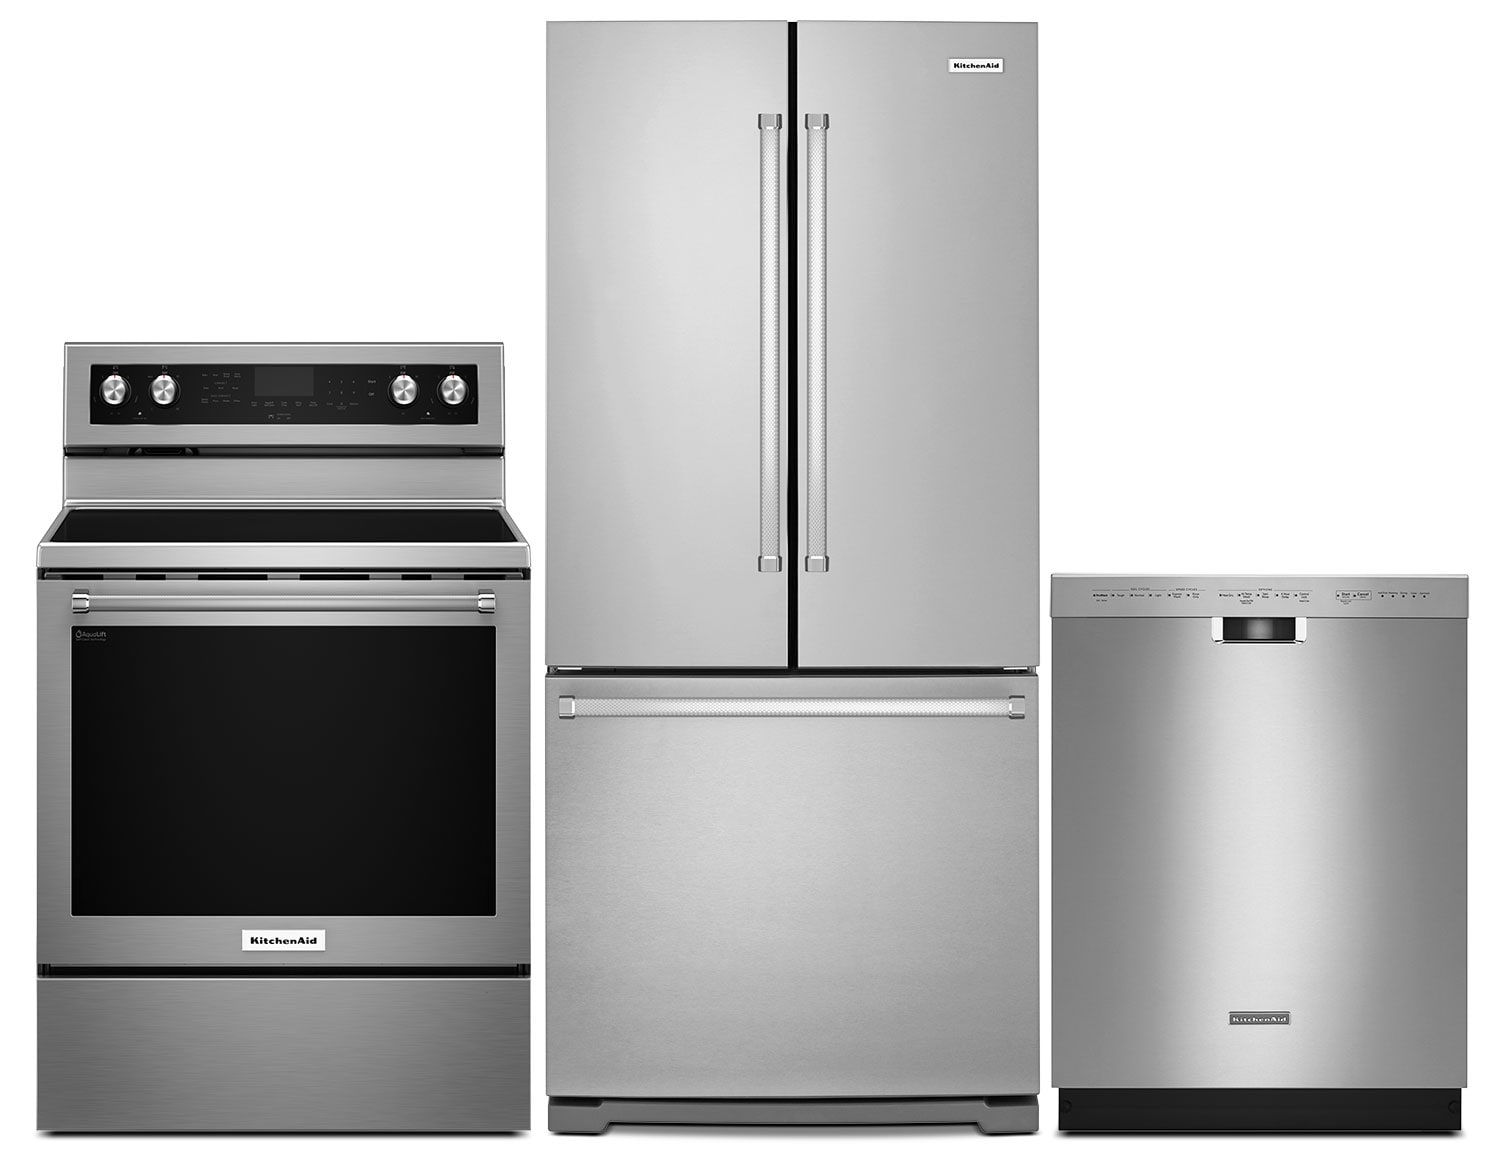 "KitchenAid 19.7 Cu. Ft. Refrigerator, 6.4 Cu. Ft. Range and 24"" Dishwasher- Stainless Steel"